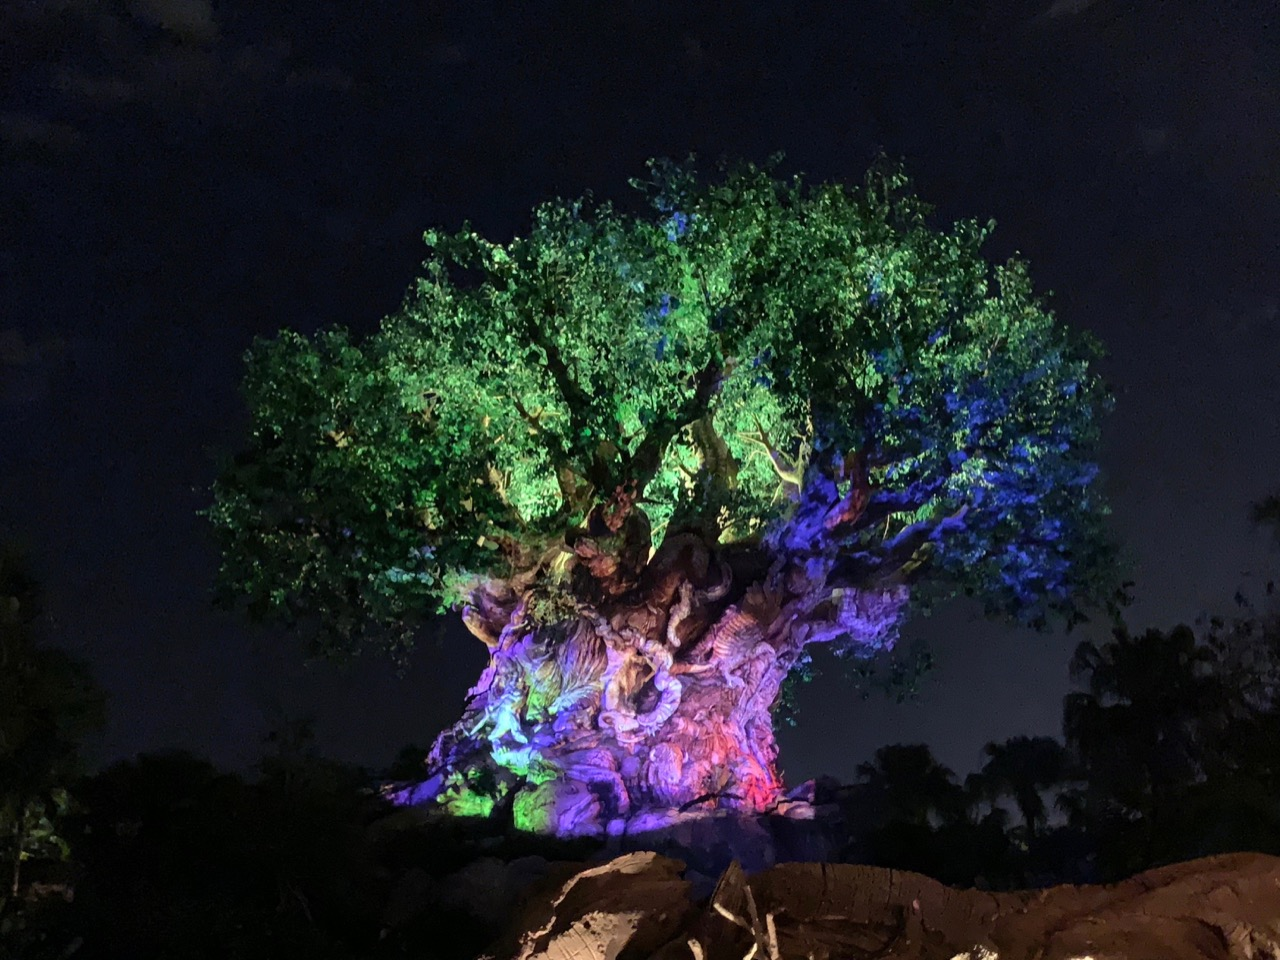 disney animal kingdom hours 03 night tree.jpeg